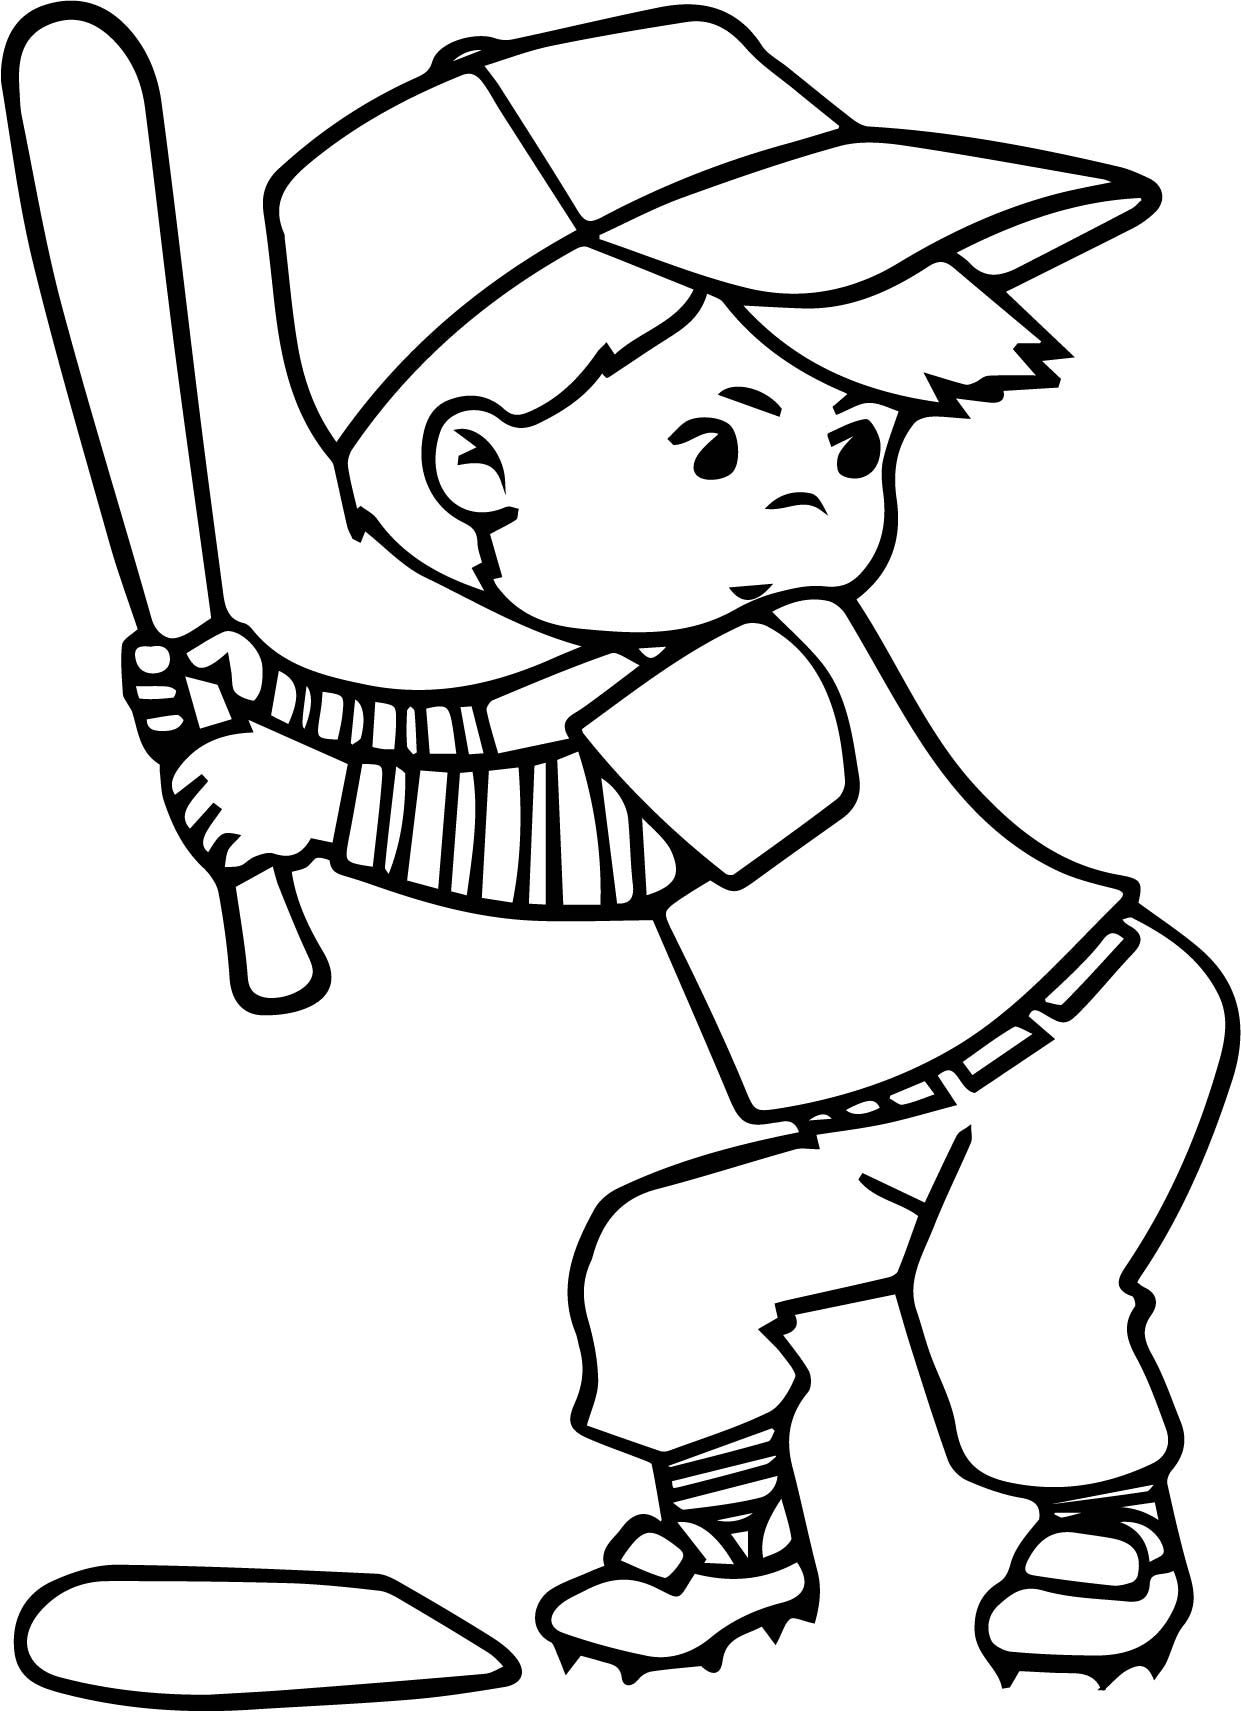 playing baseball child kid free printable coloring page